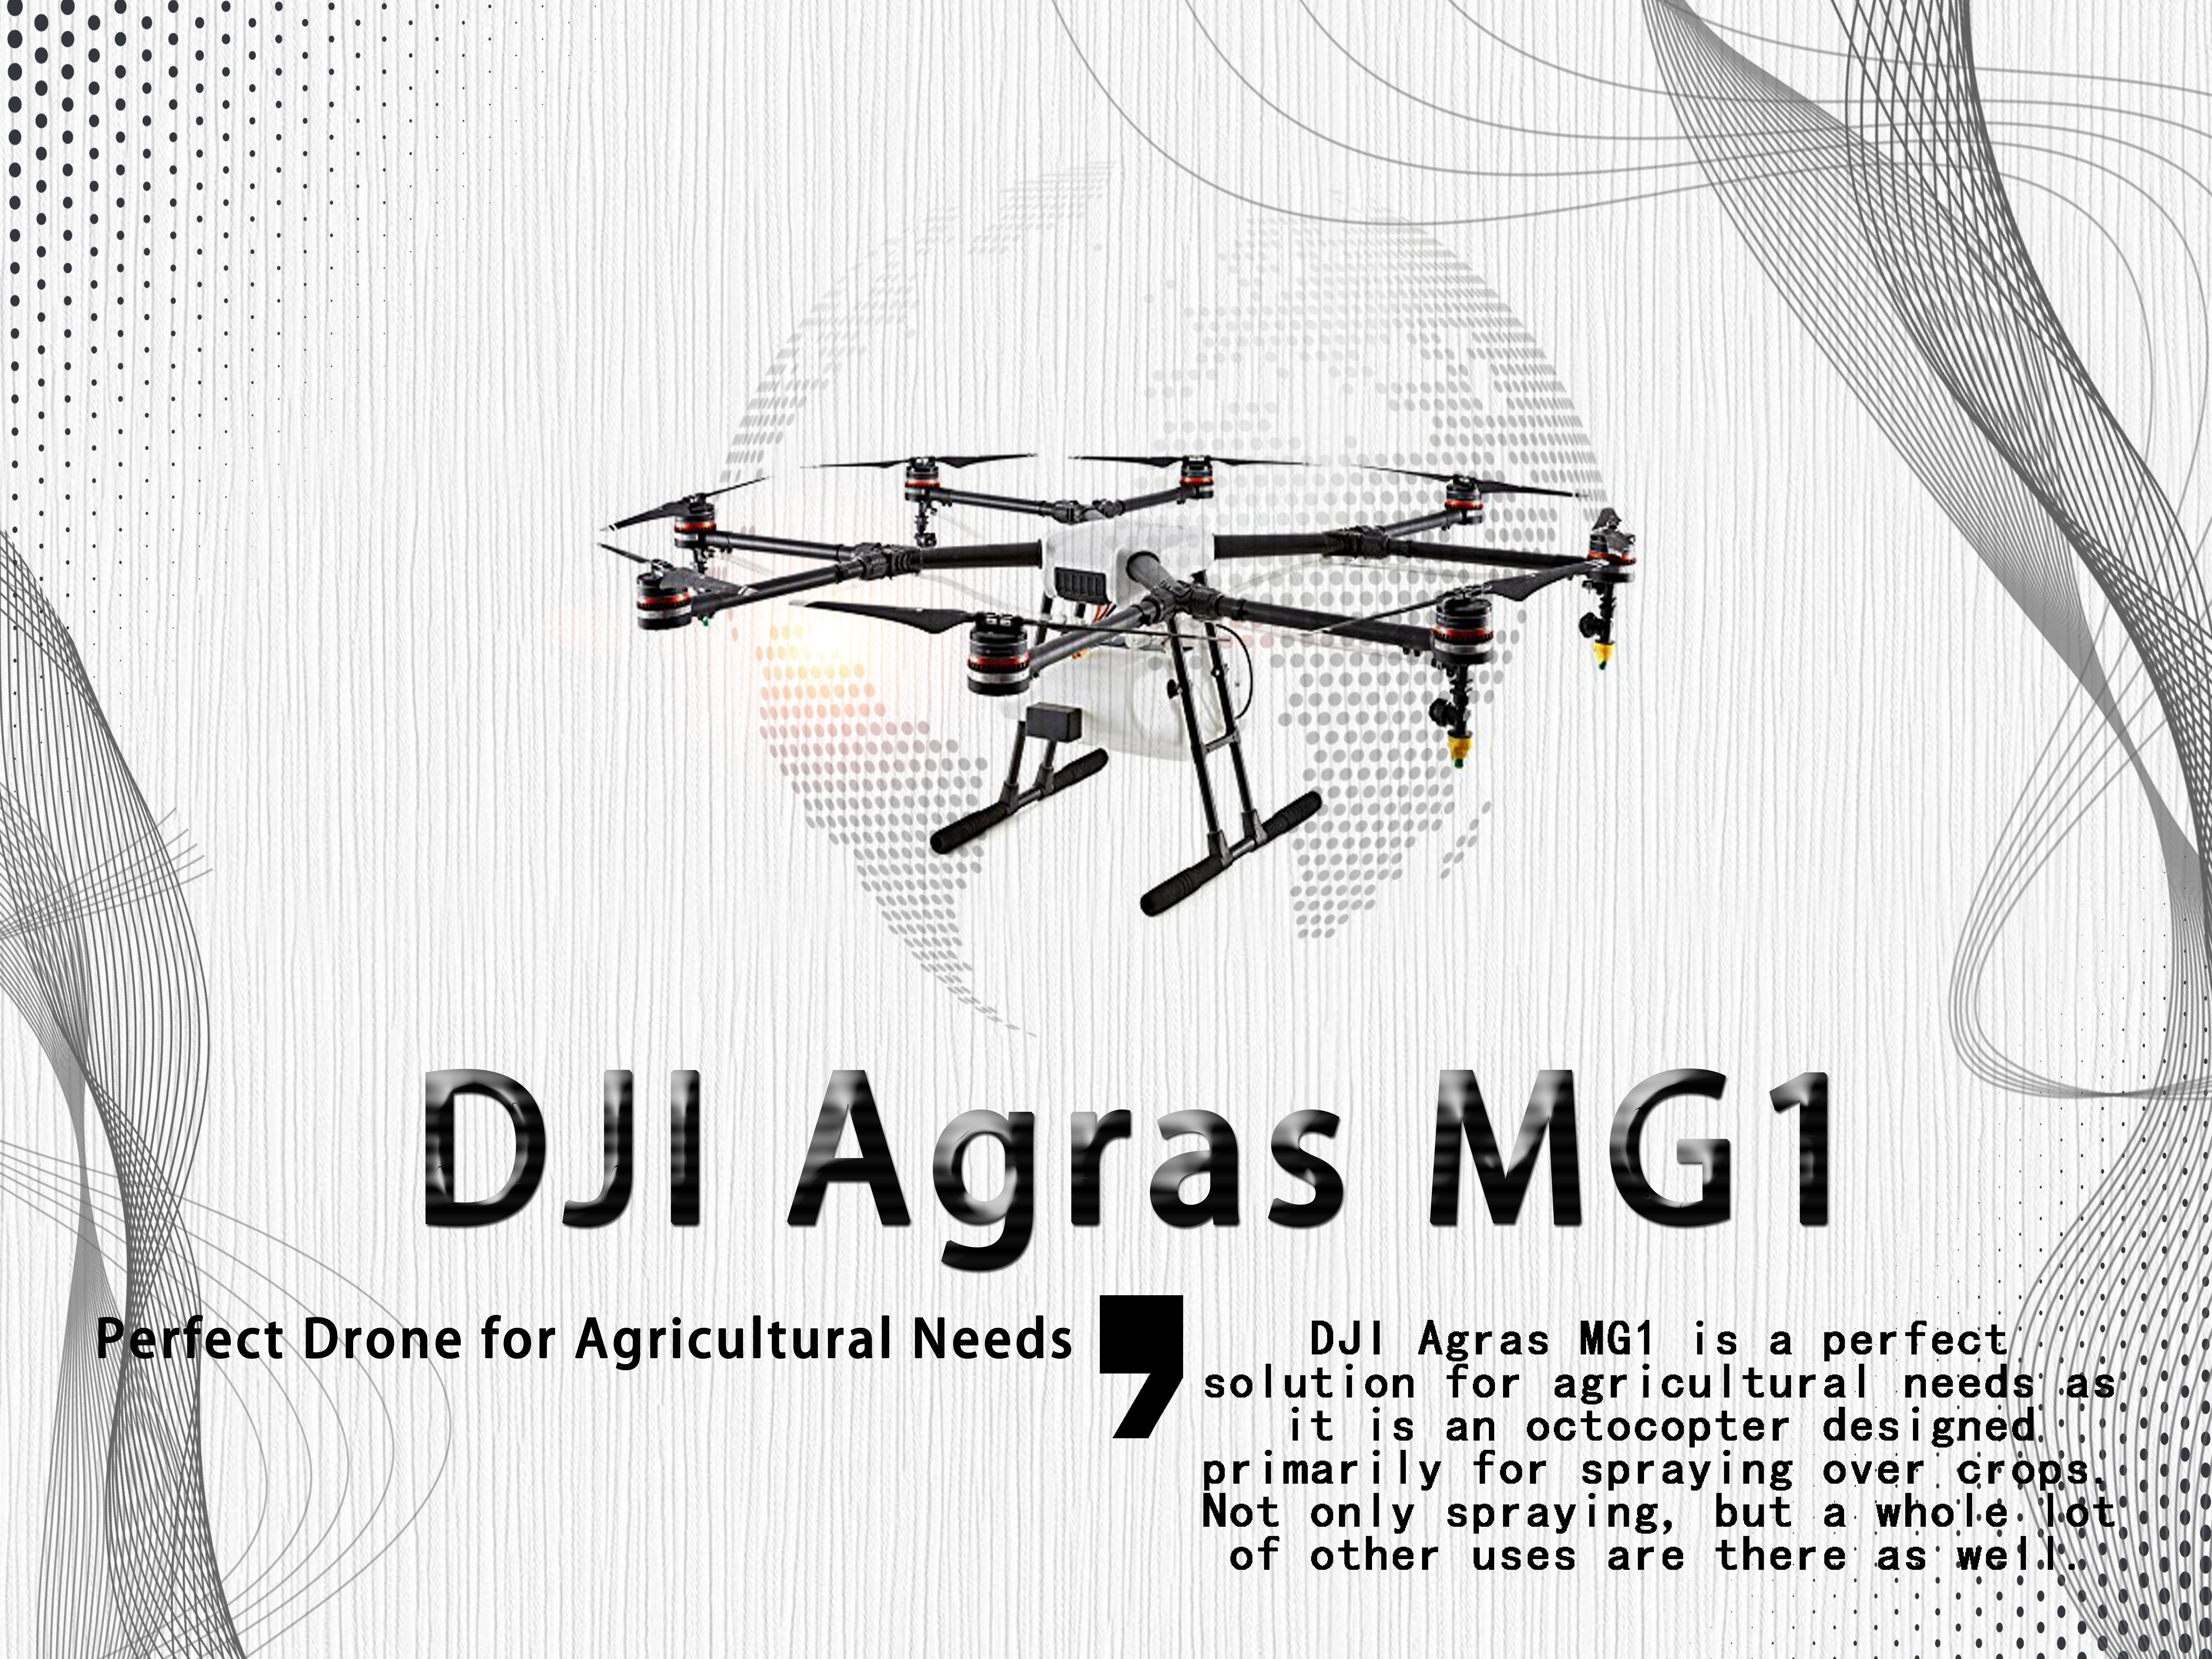 DJI Agras MG1 Review – Perfect Drone for Agricultural Needs